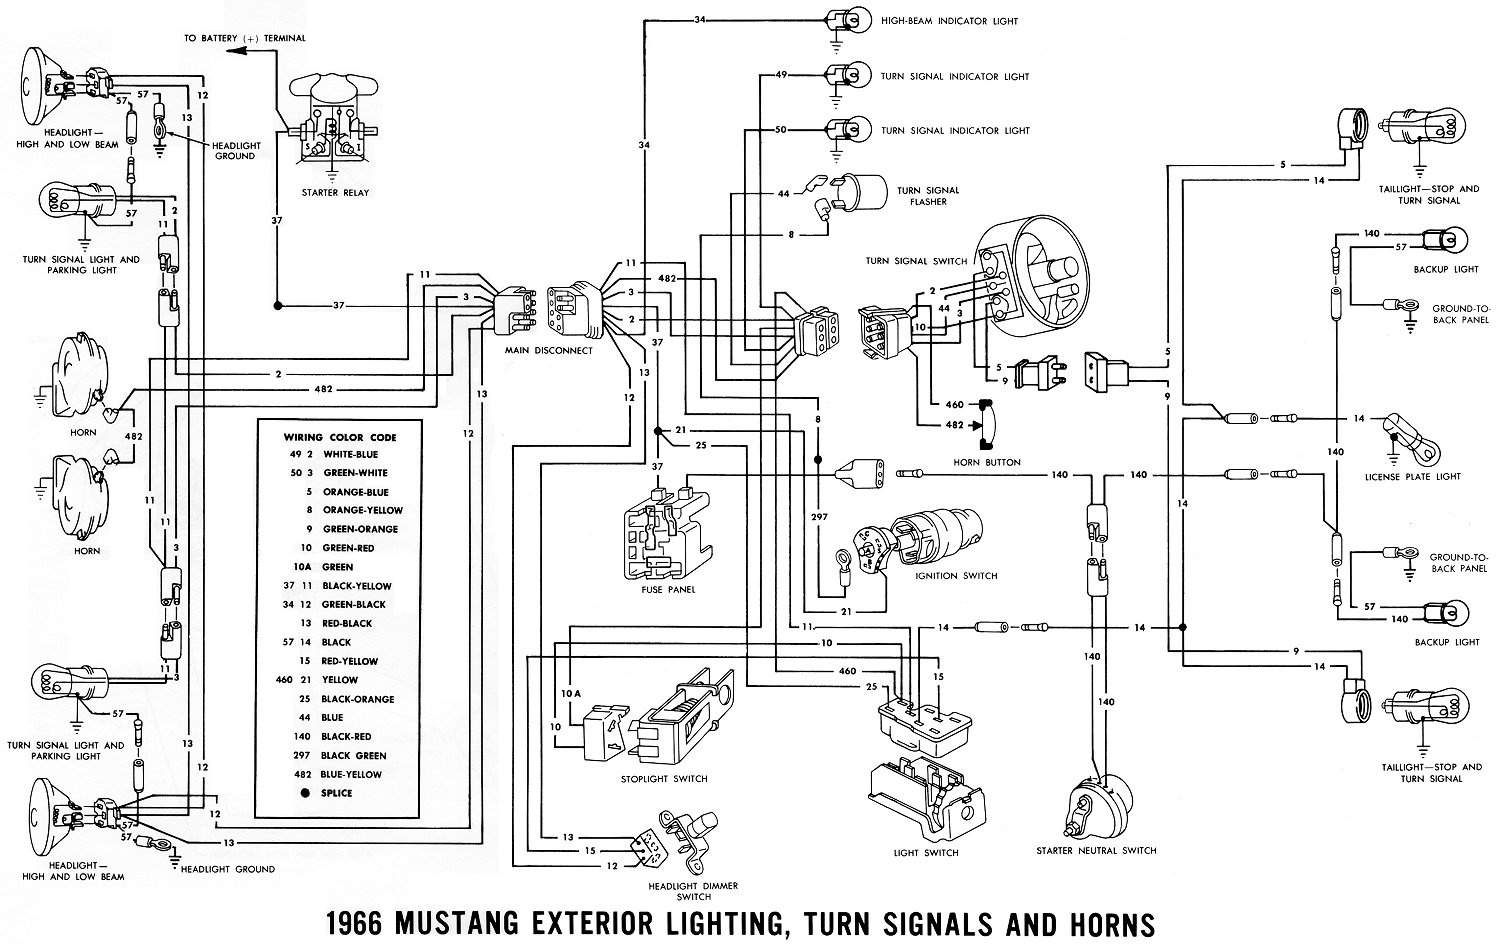 Wiring Diagram 69 Mustang Ignition Switch Powerking Co 1968 Ford Mustang Wiring  Diagram 1966 Mustang Ignition Switch Wiring Diagram